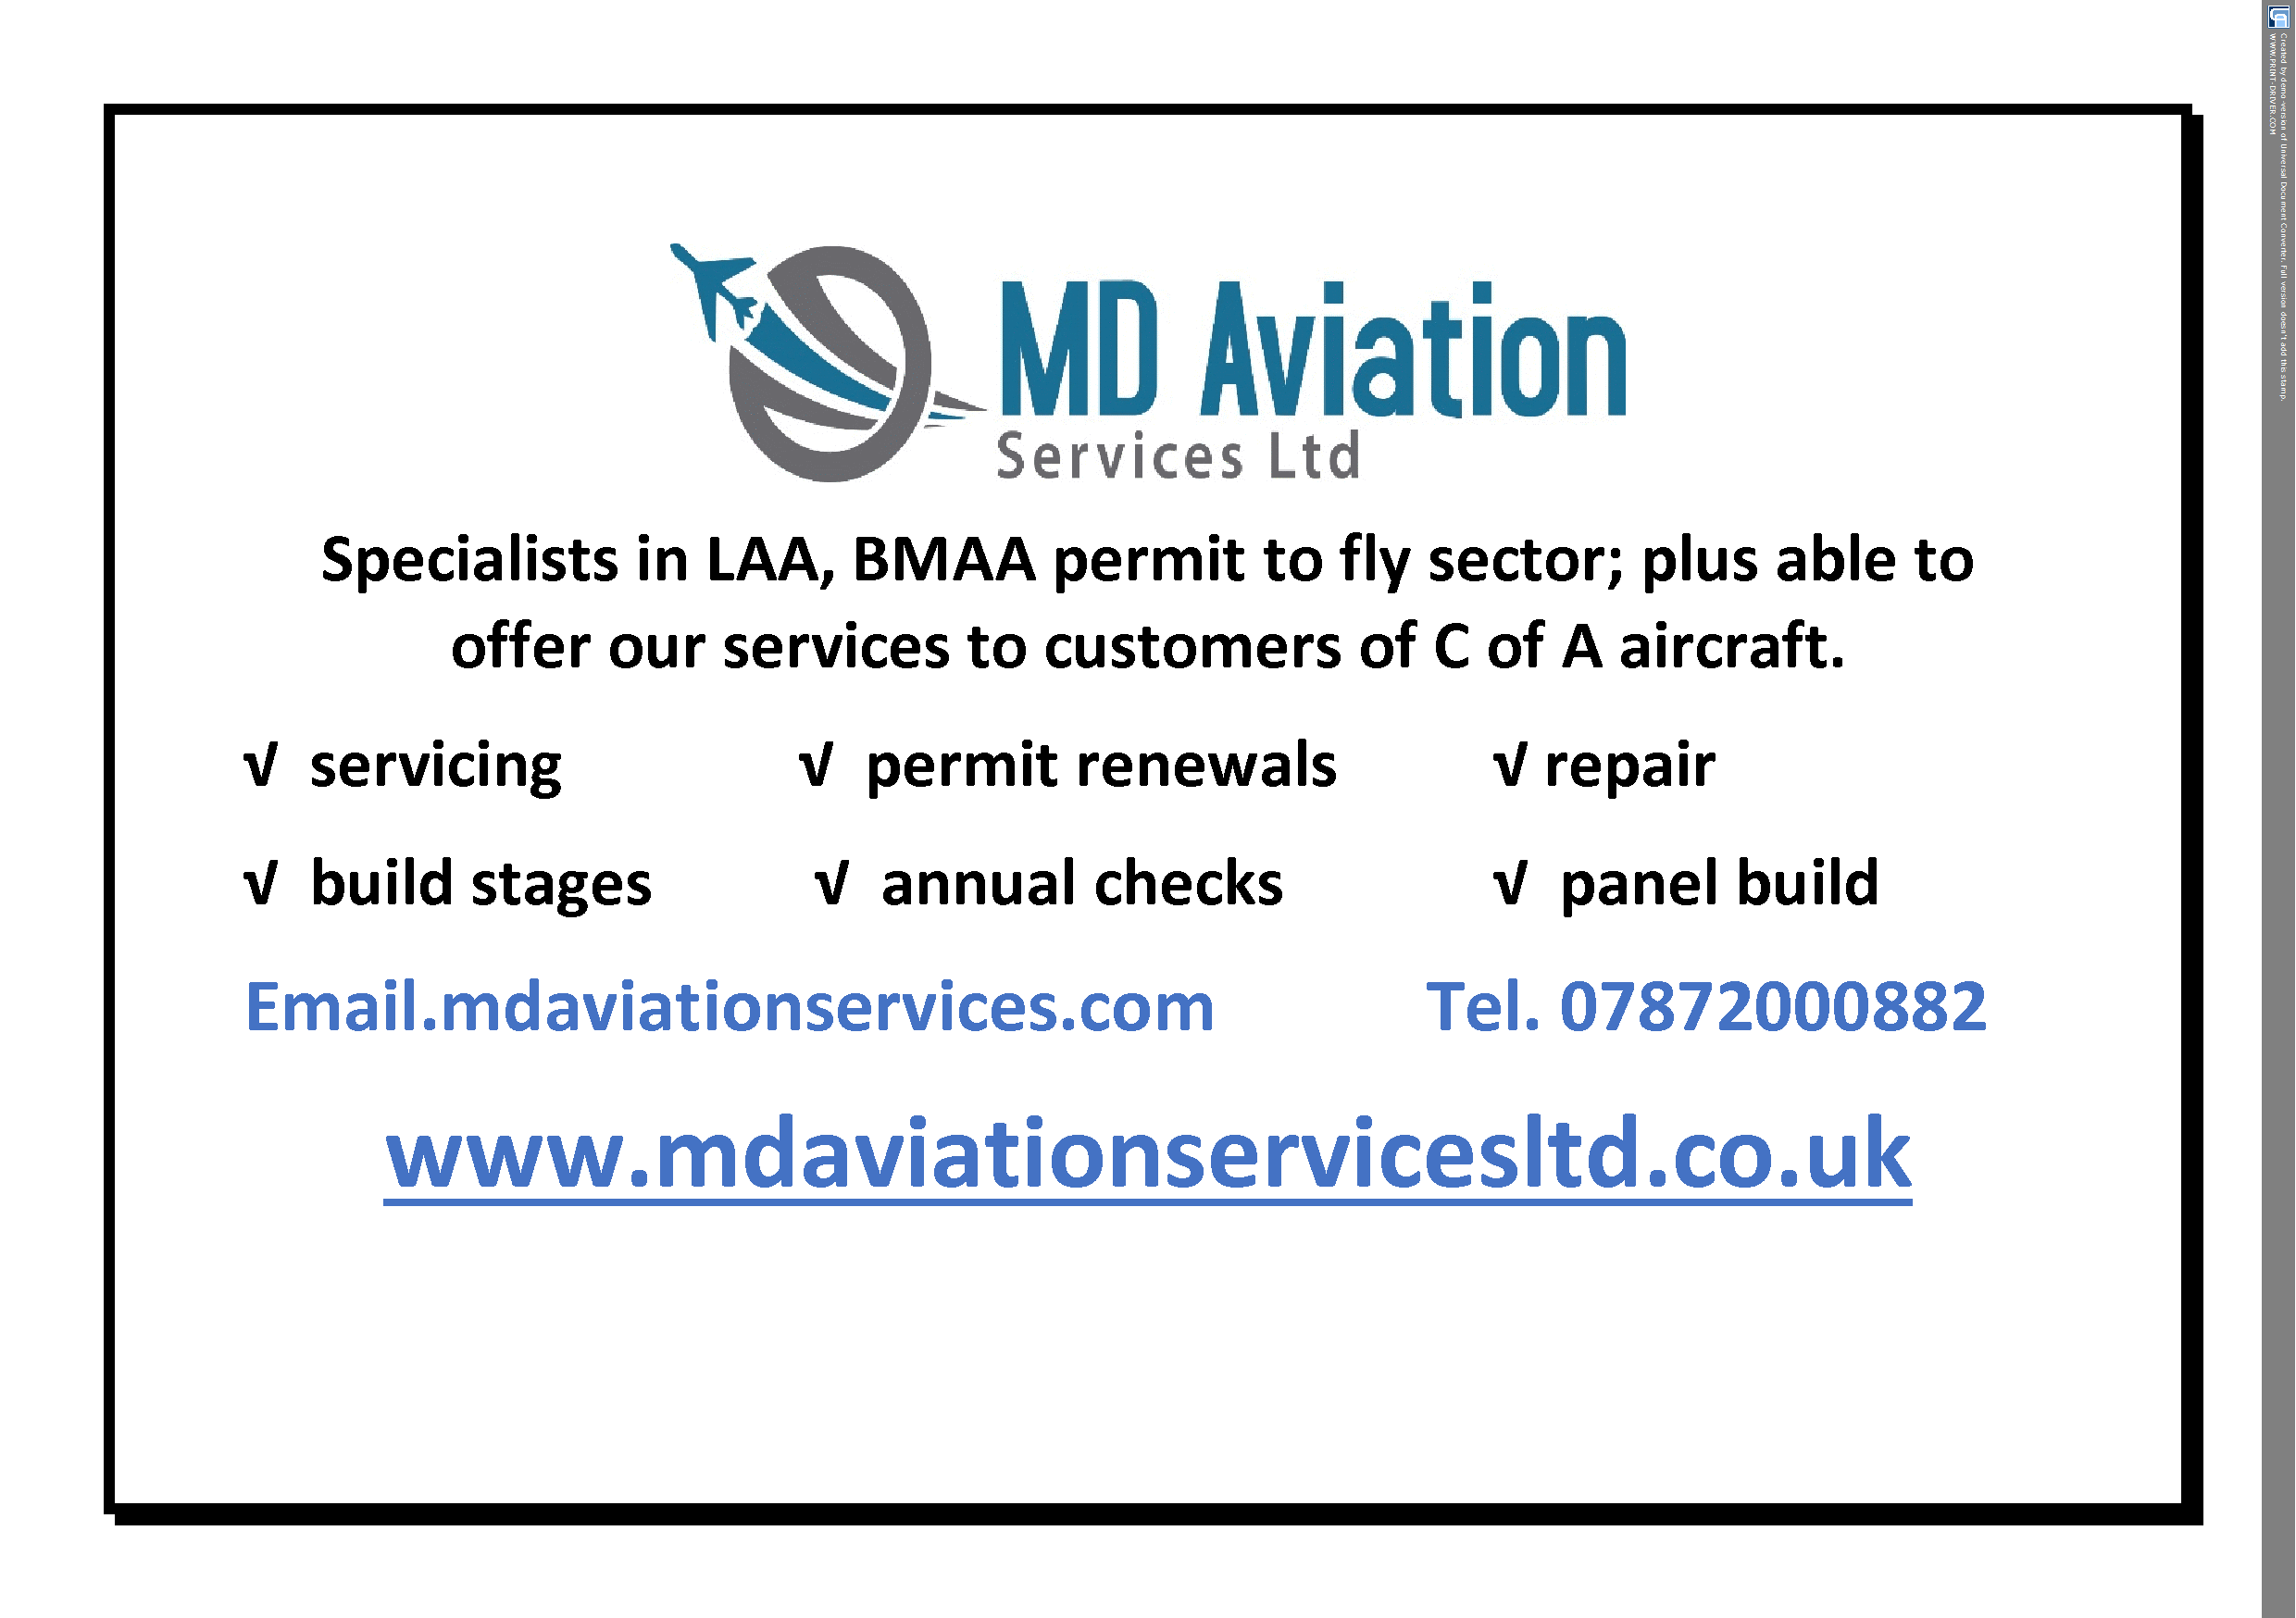 MD Aviation Services